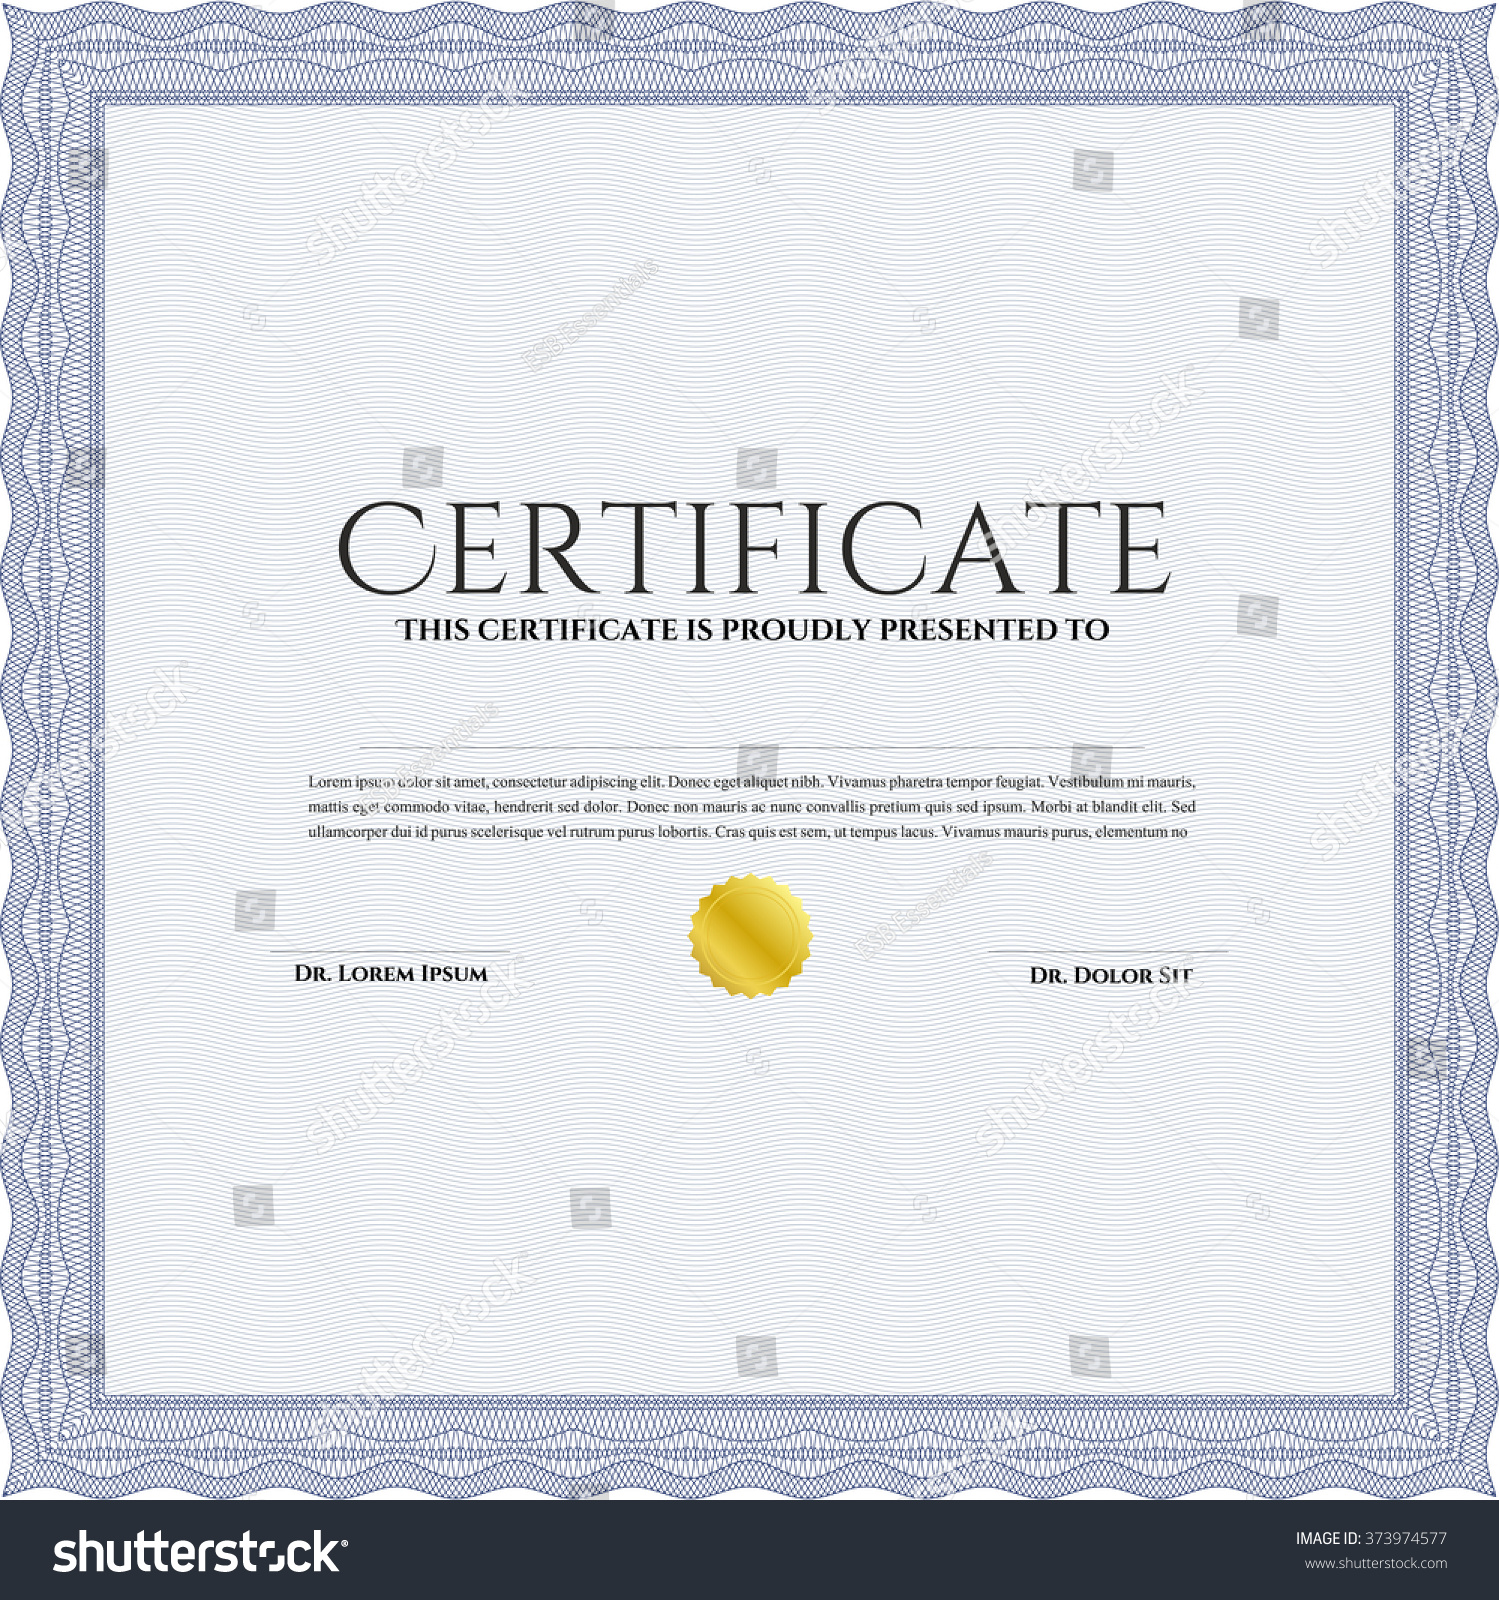 Free martial arts certificate templates gallery templates free martial arts certificate templates images templates example martial arts dragon certificate template microsoft proposal martial xflitez Gallery